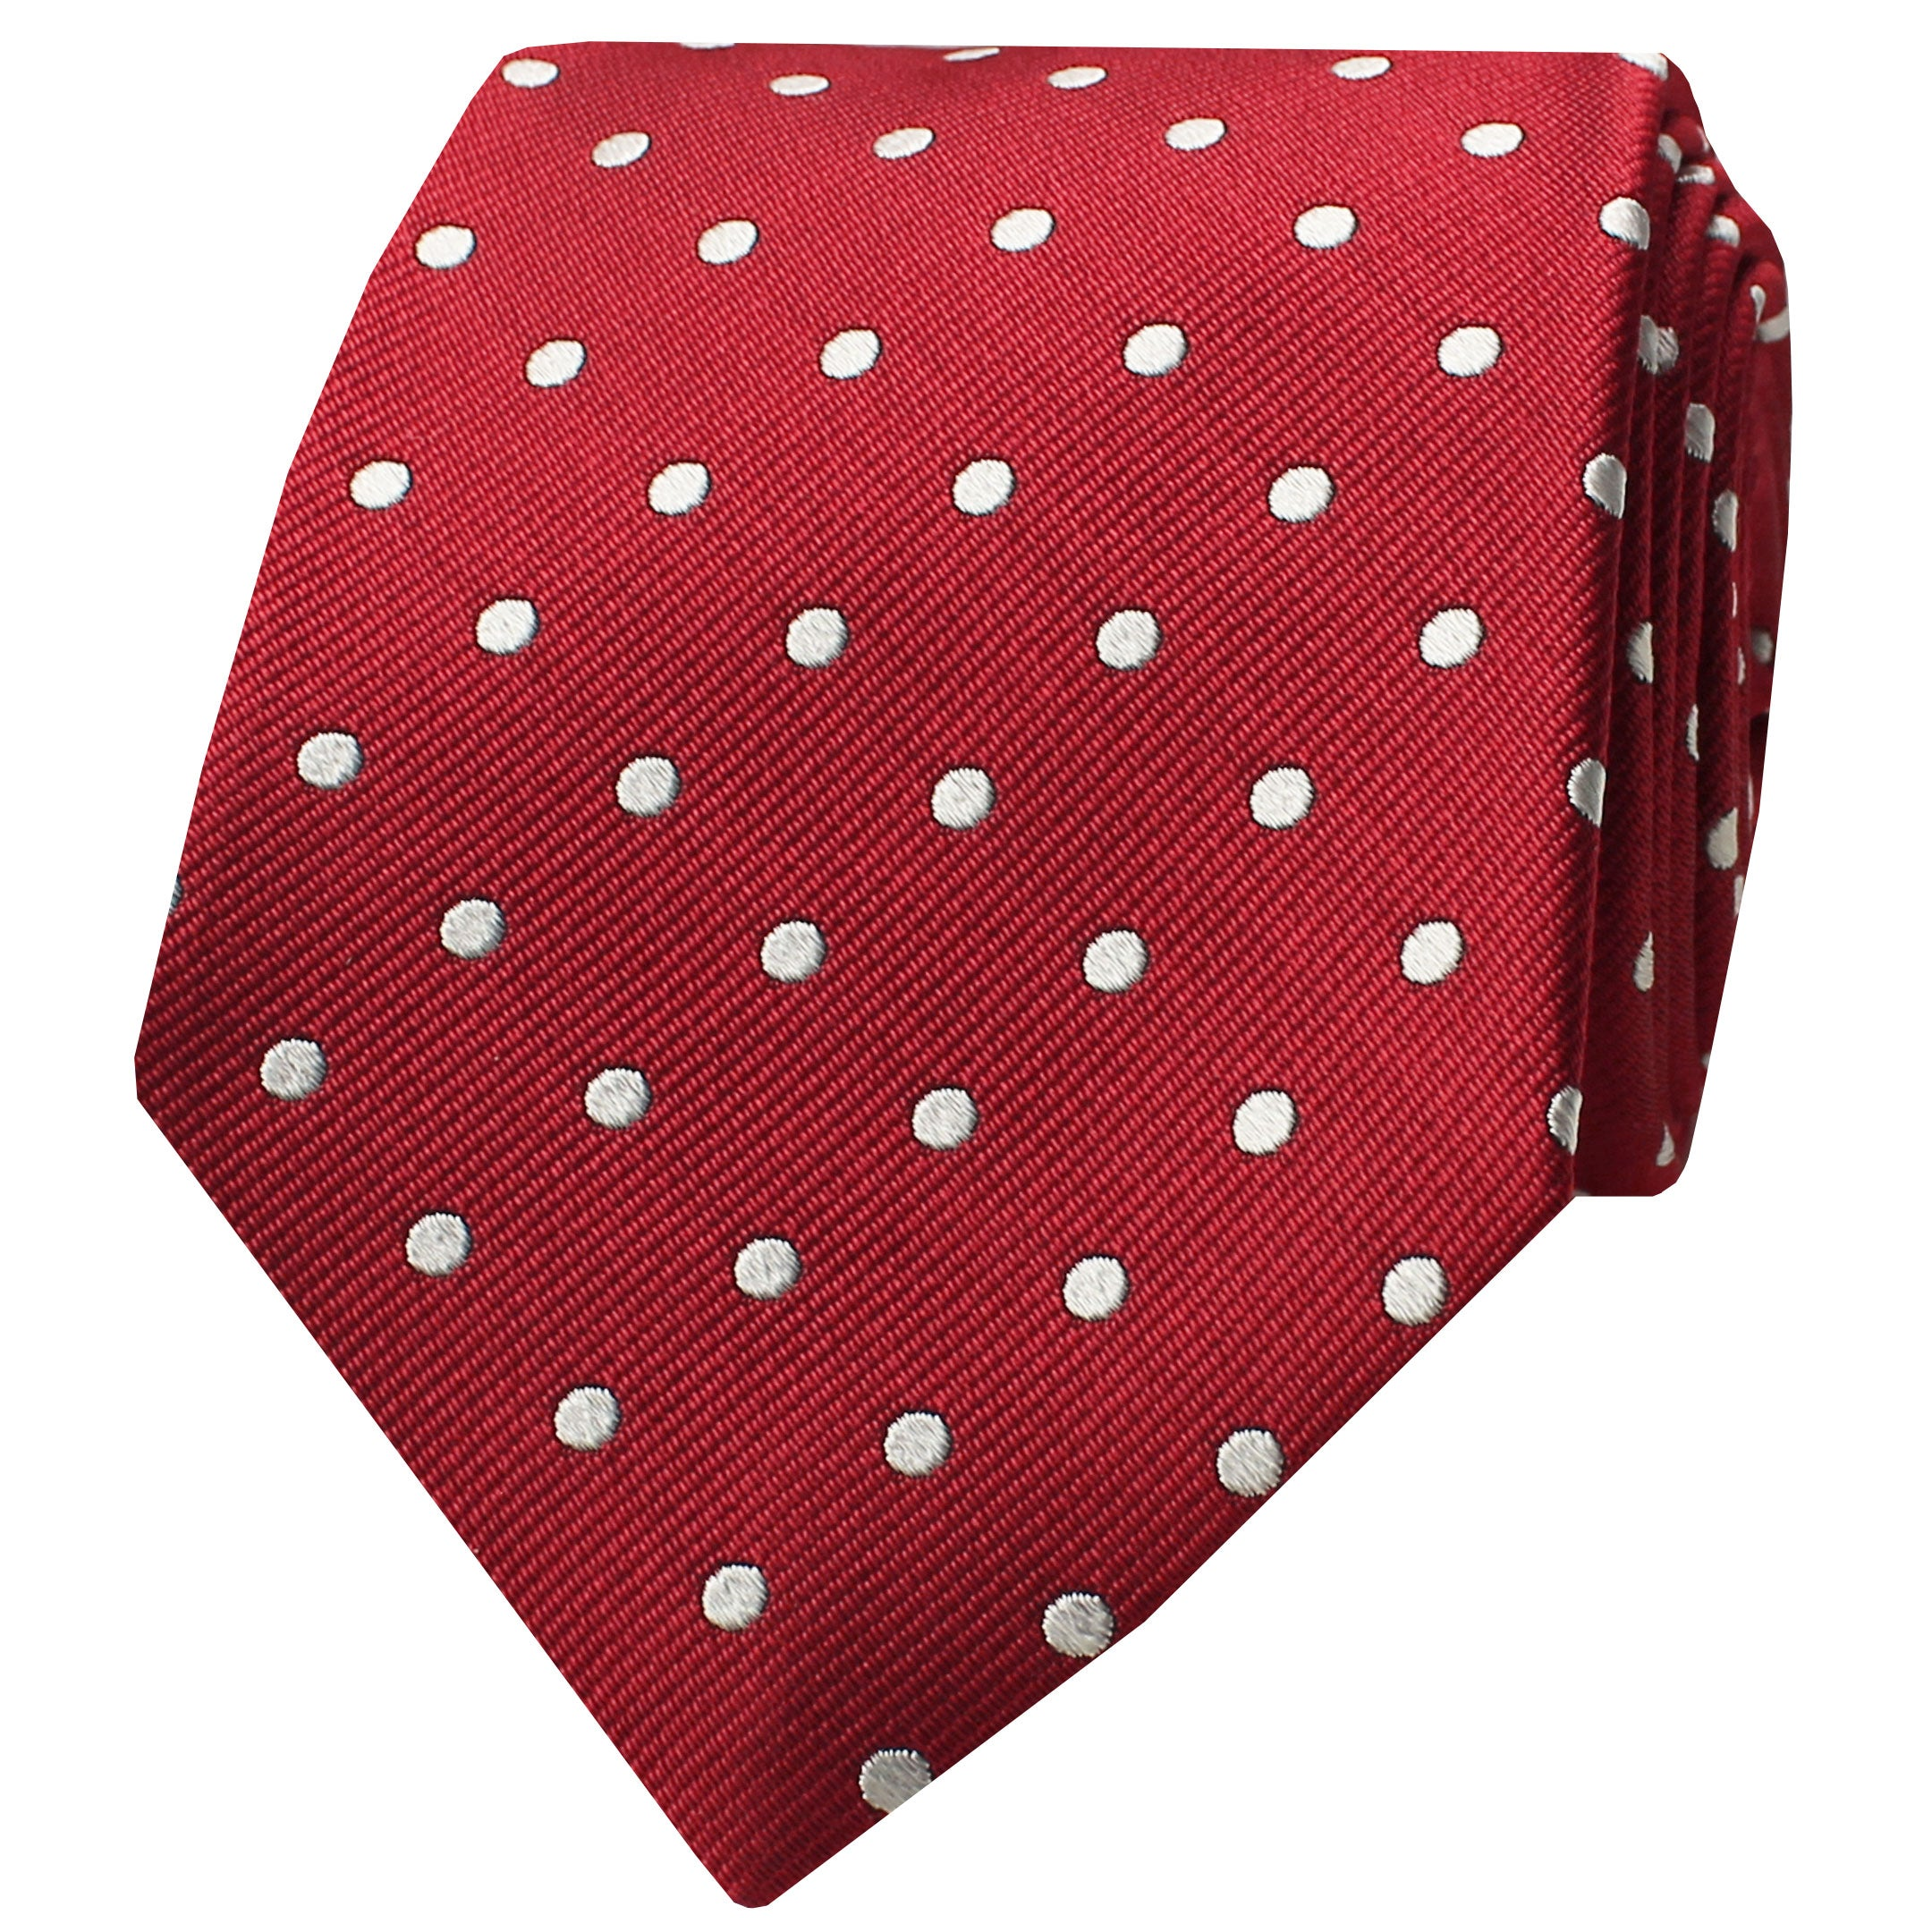 Red Woven Diagonal Twill Polka Dot Tie